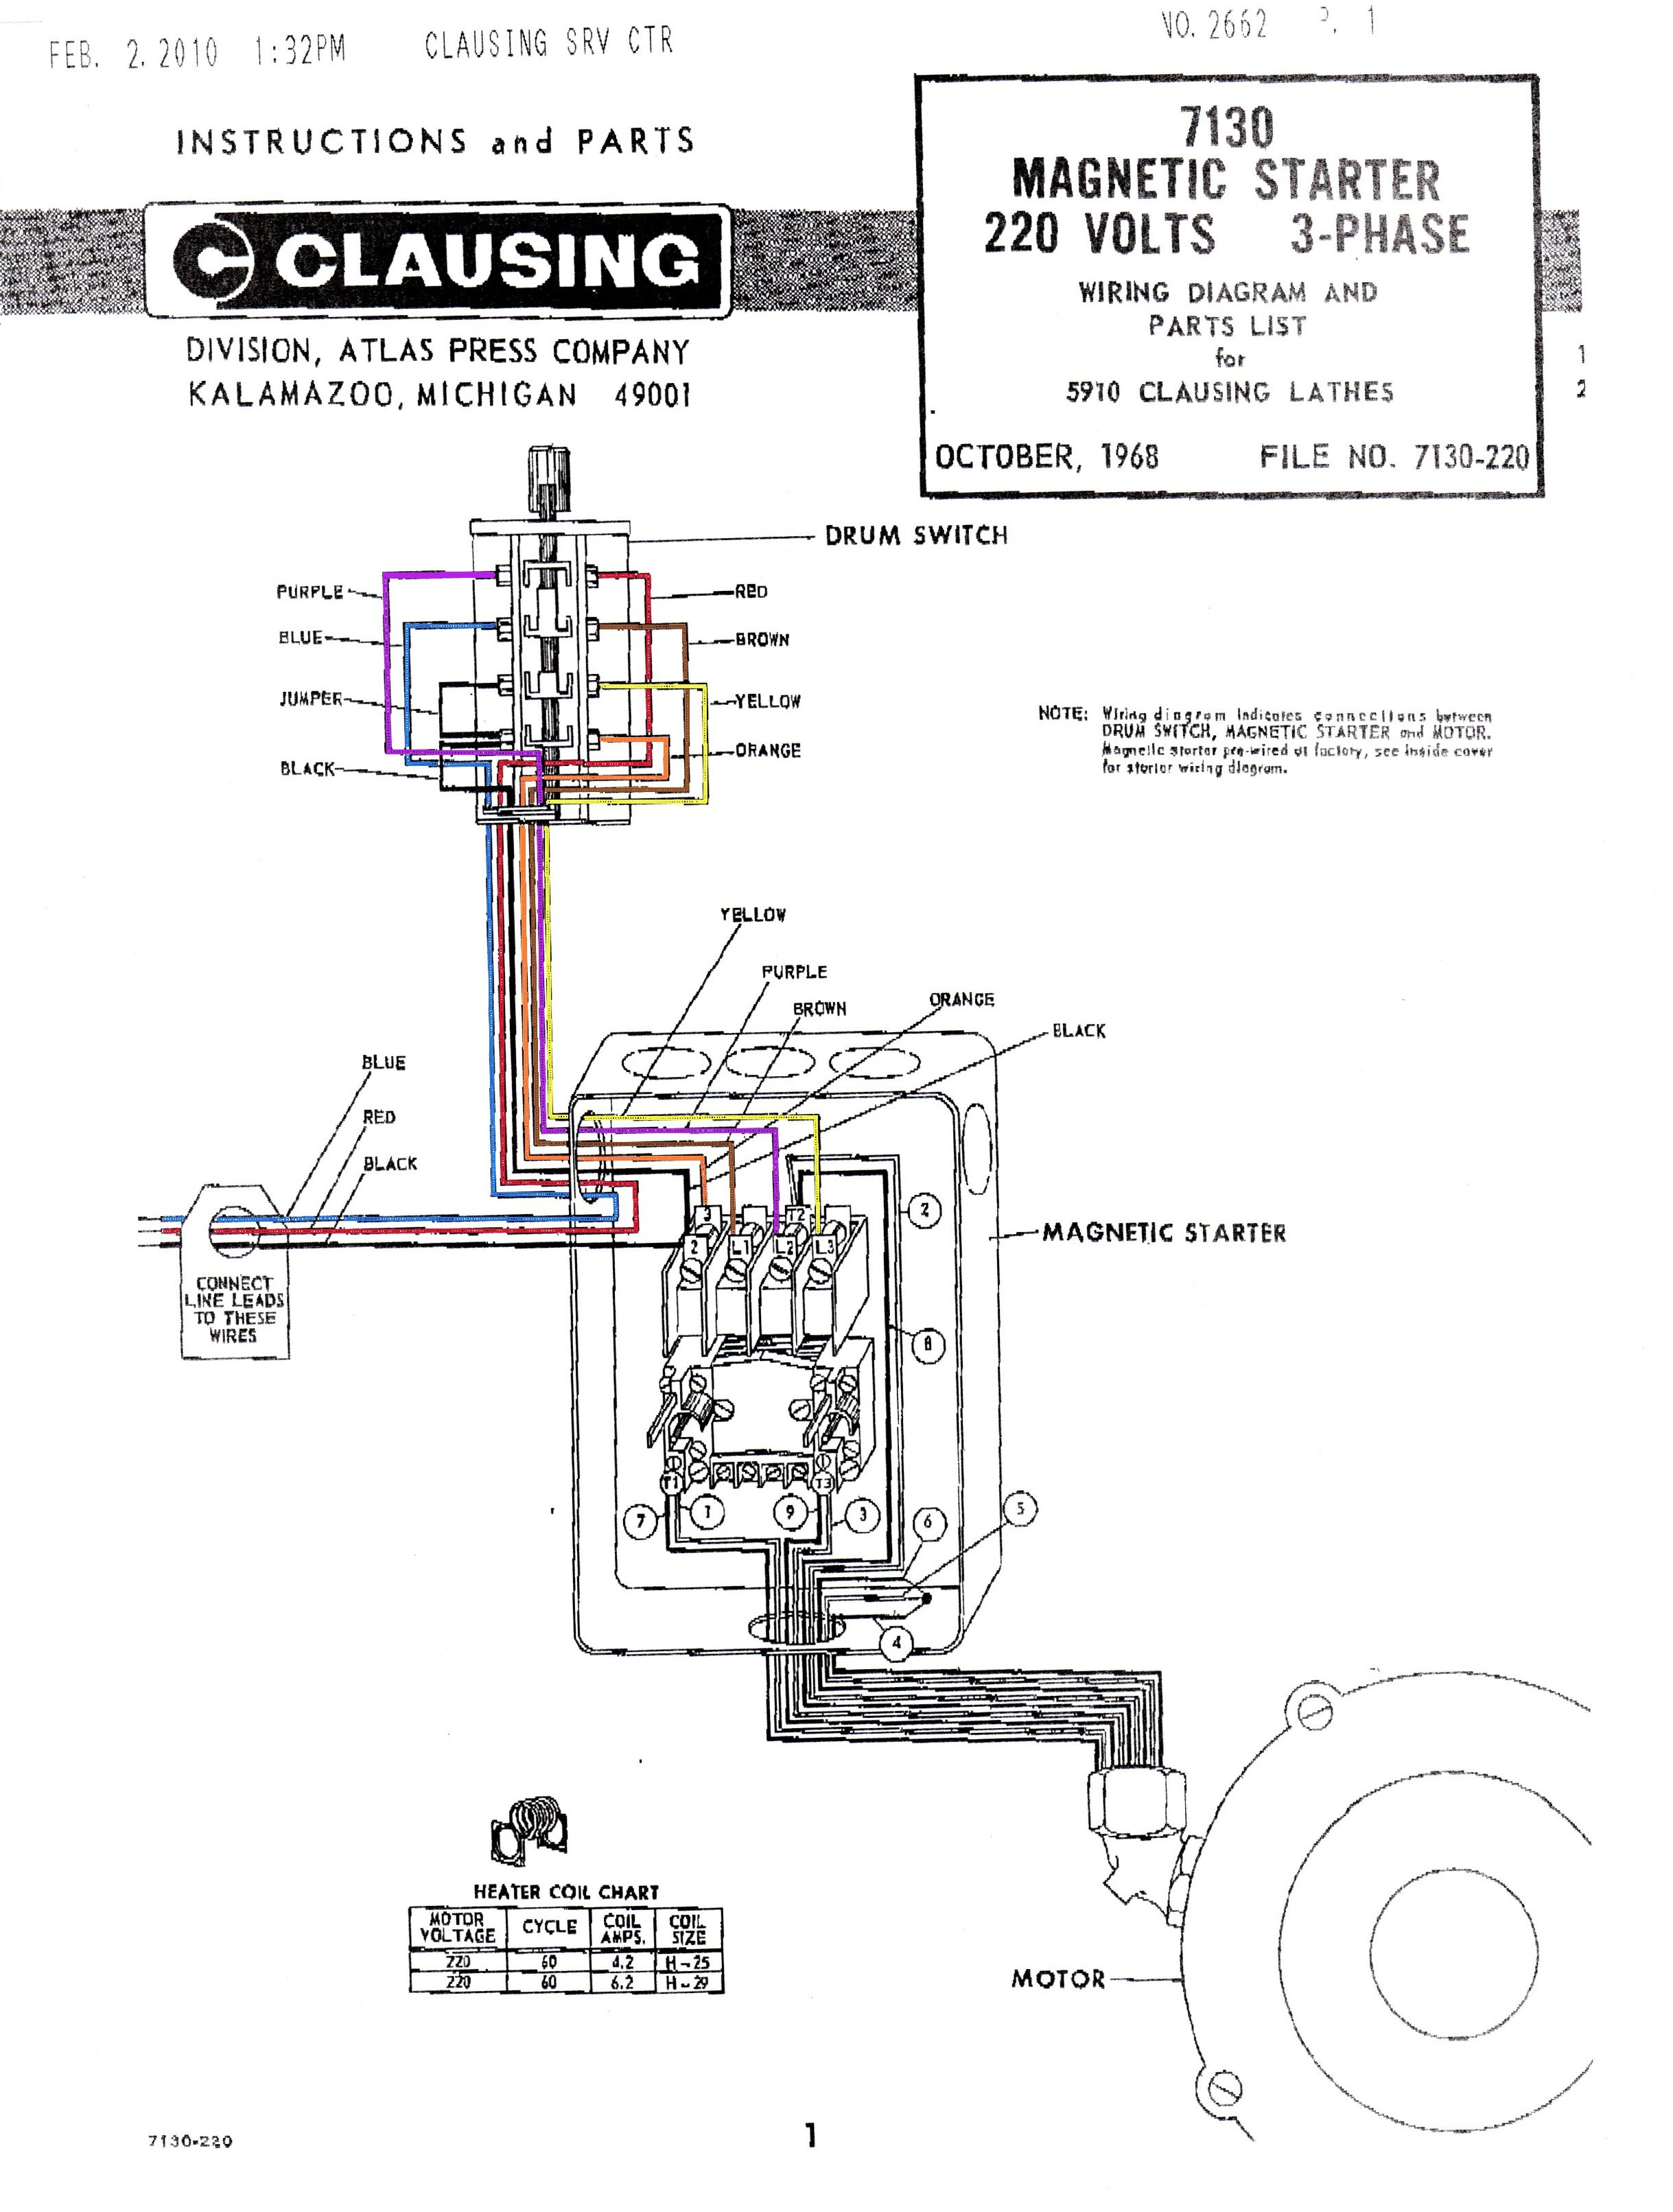 Diagram Tc Motor Starter Wiring Diagram Full Version Hd In 2020 Diagram Wire Bathroom Fan Installation